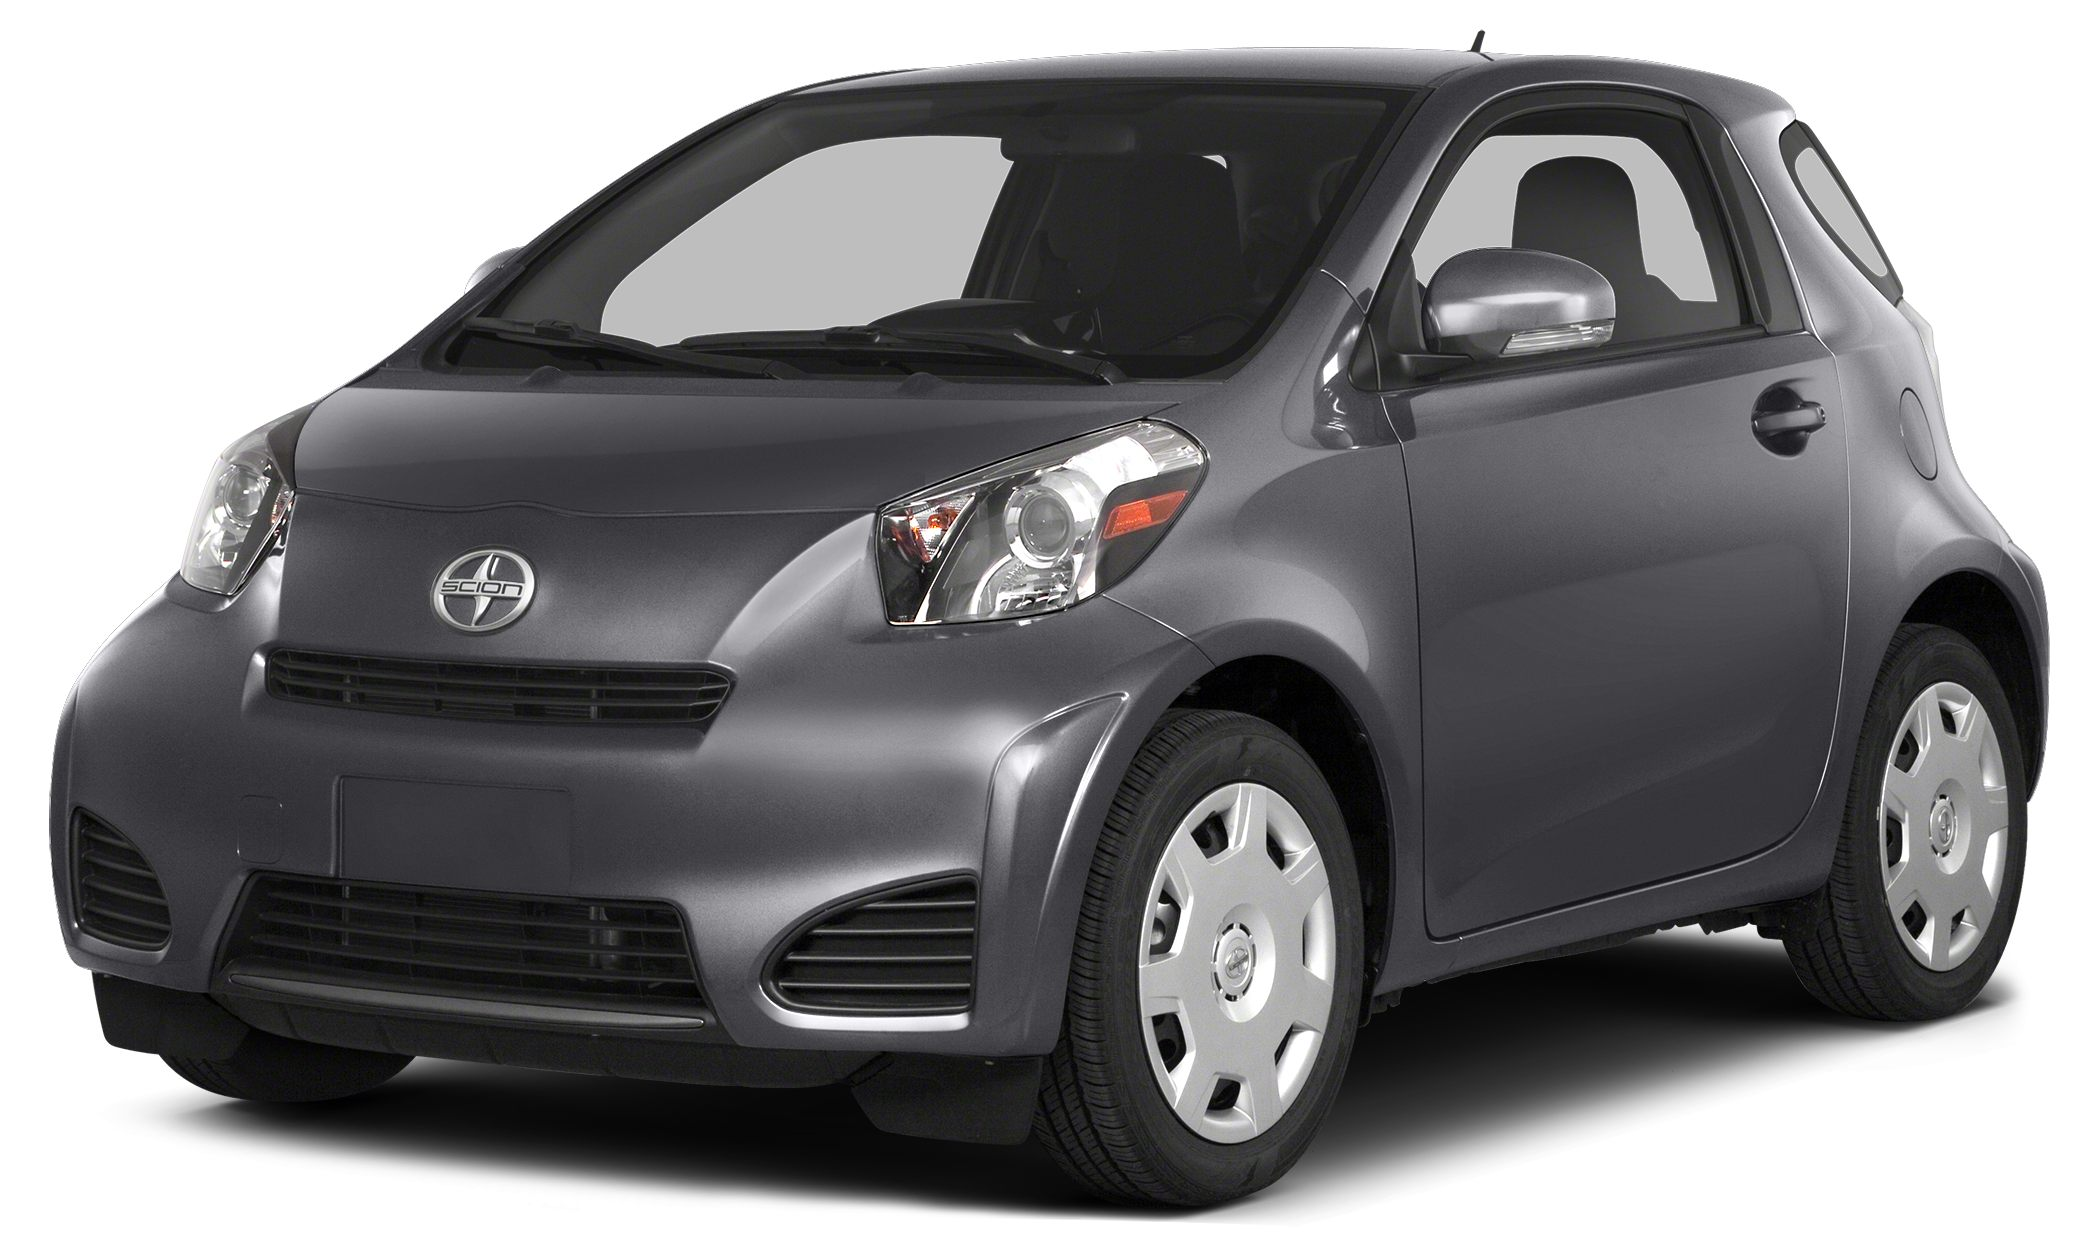 2012 Scion iQ Base CARFAX 1-Owner GREAT MILES 29784 iQ trim WAS 12477 EPA 37 MPG Hwy36 MPG